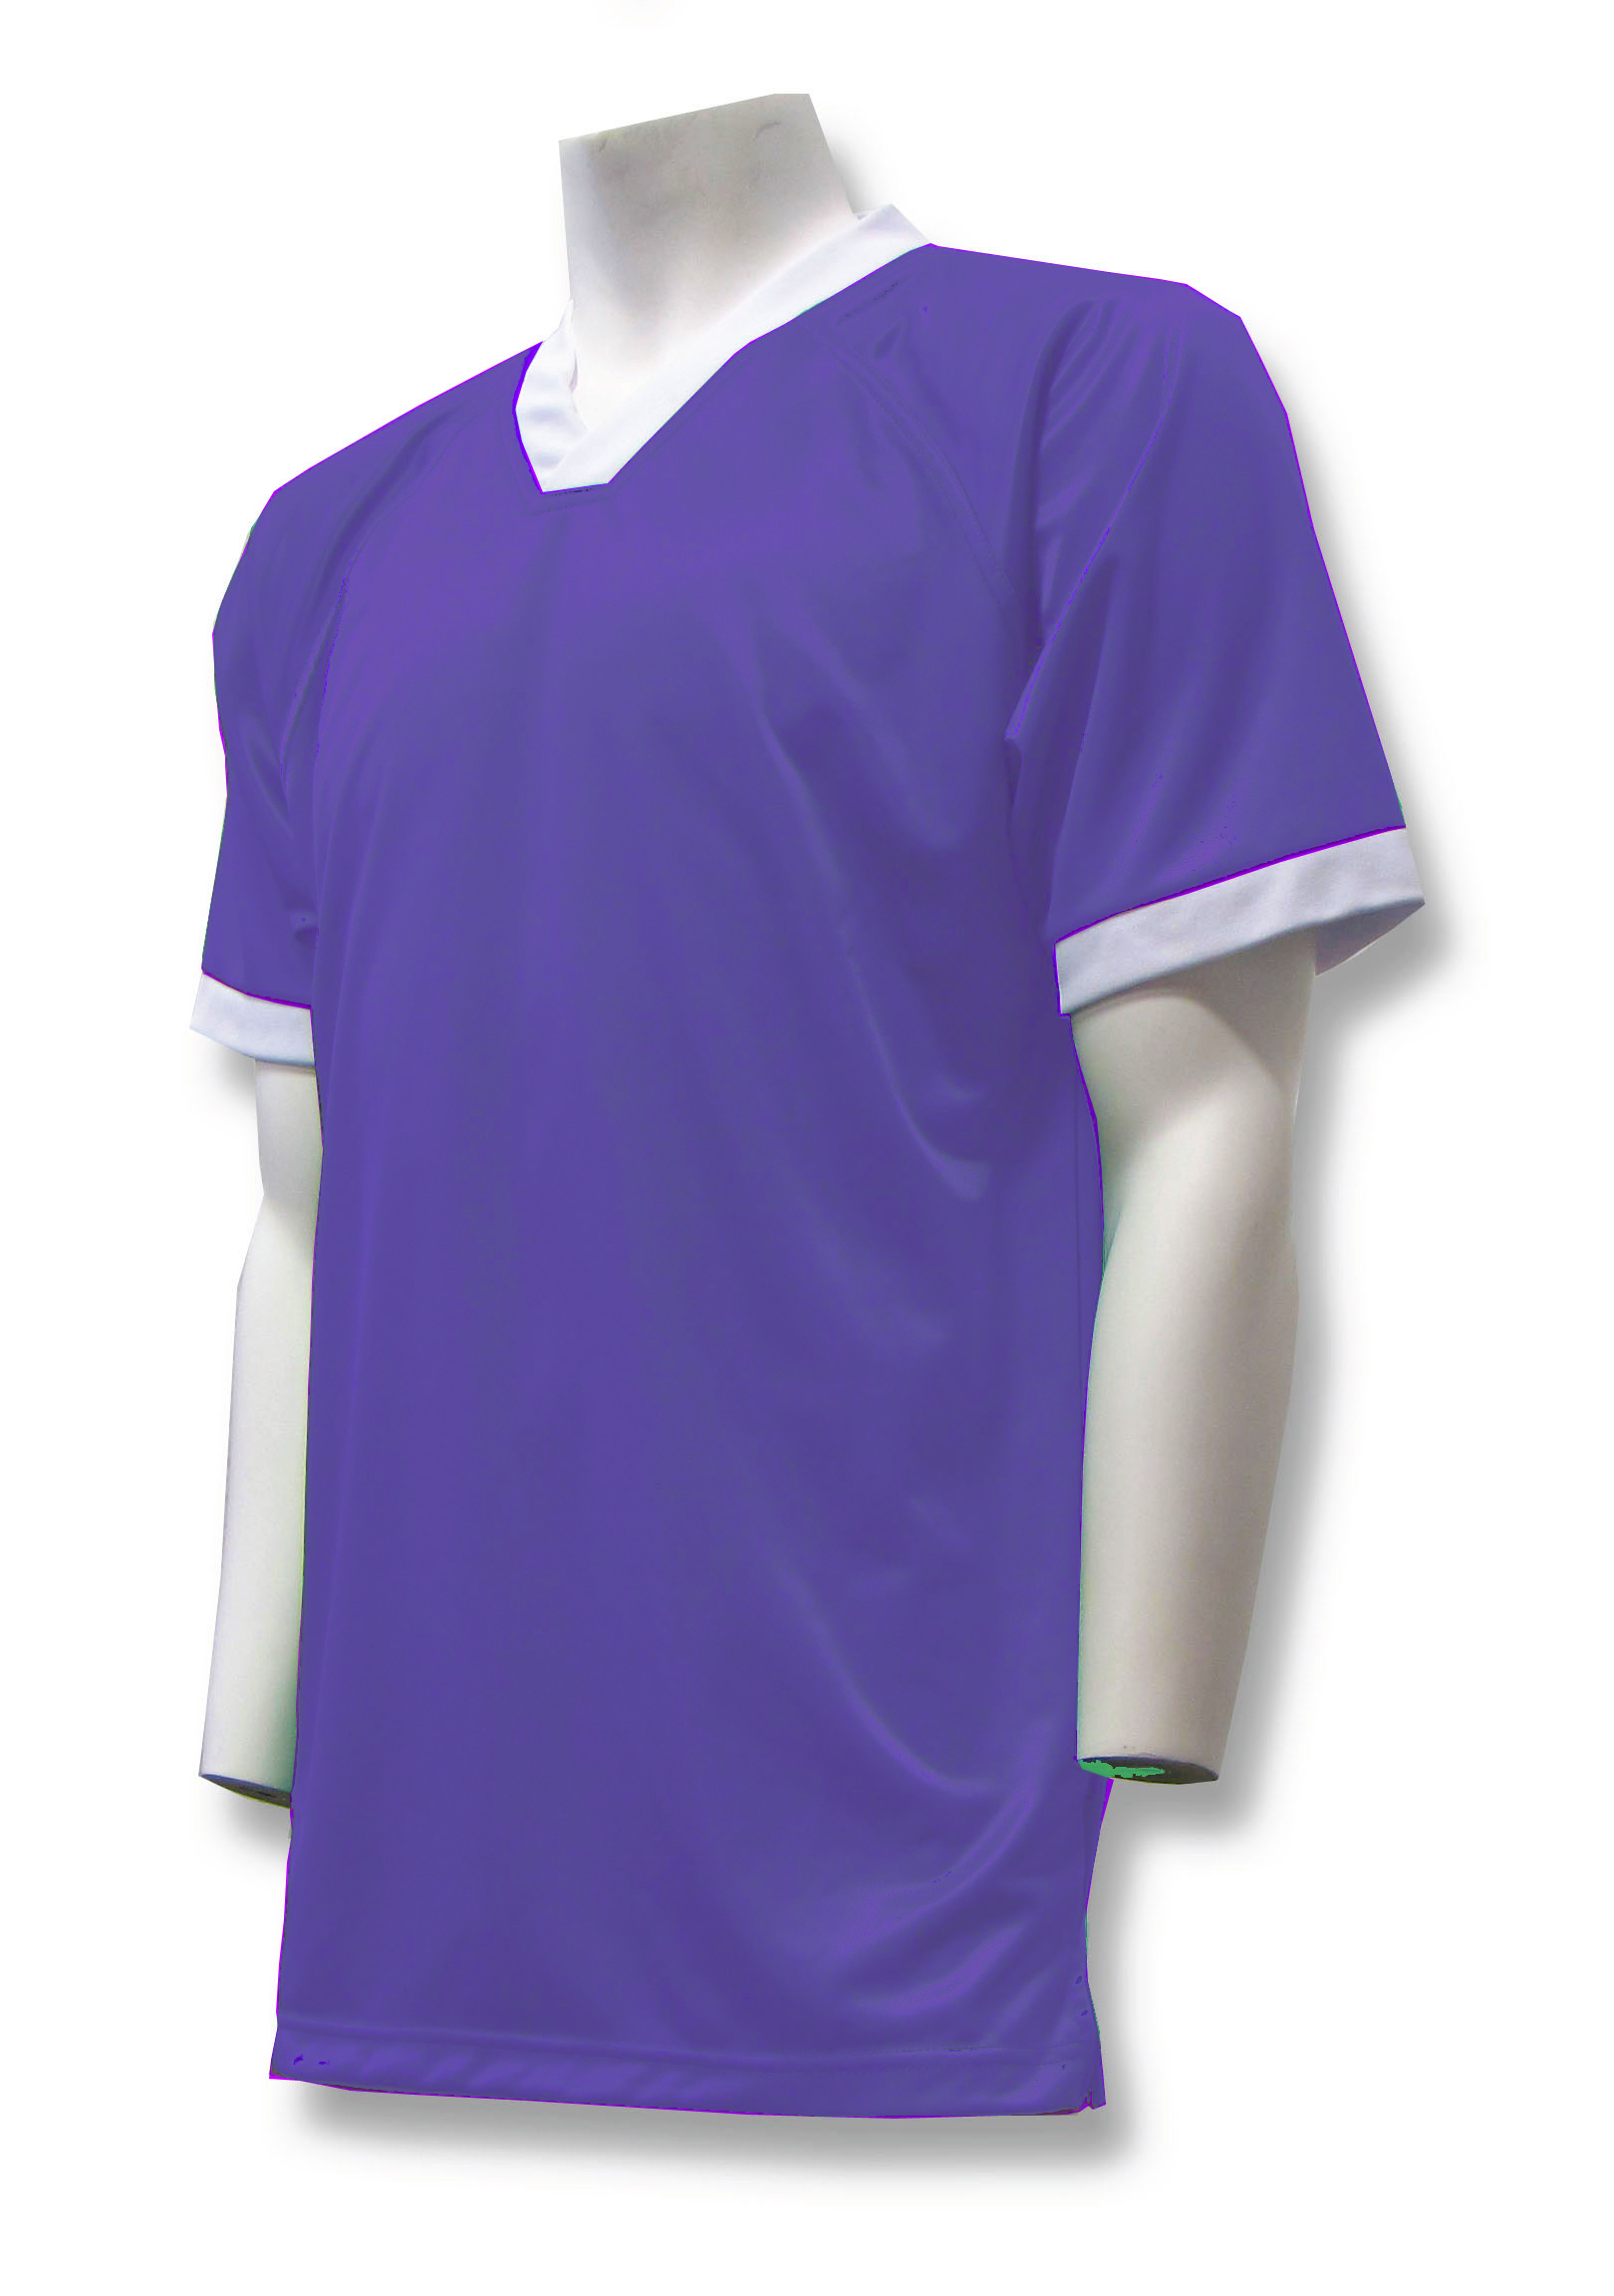 Pioneer soccer jersey in purple by Code Four Athletics